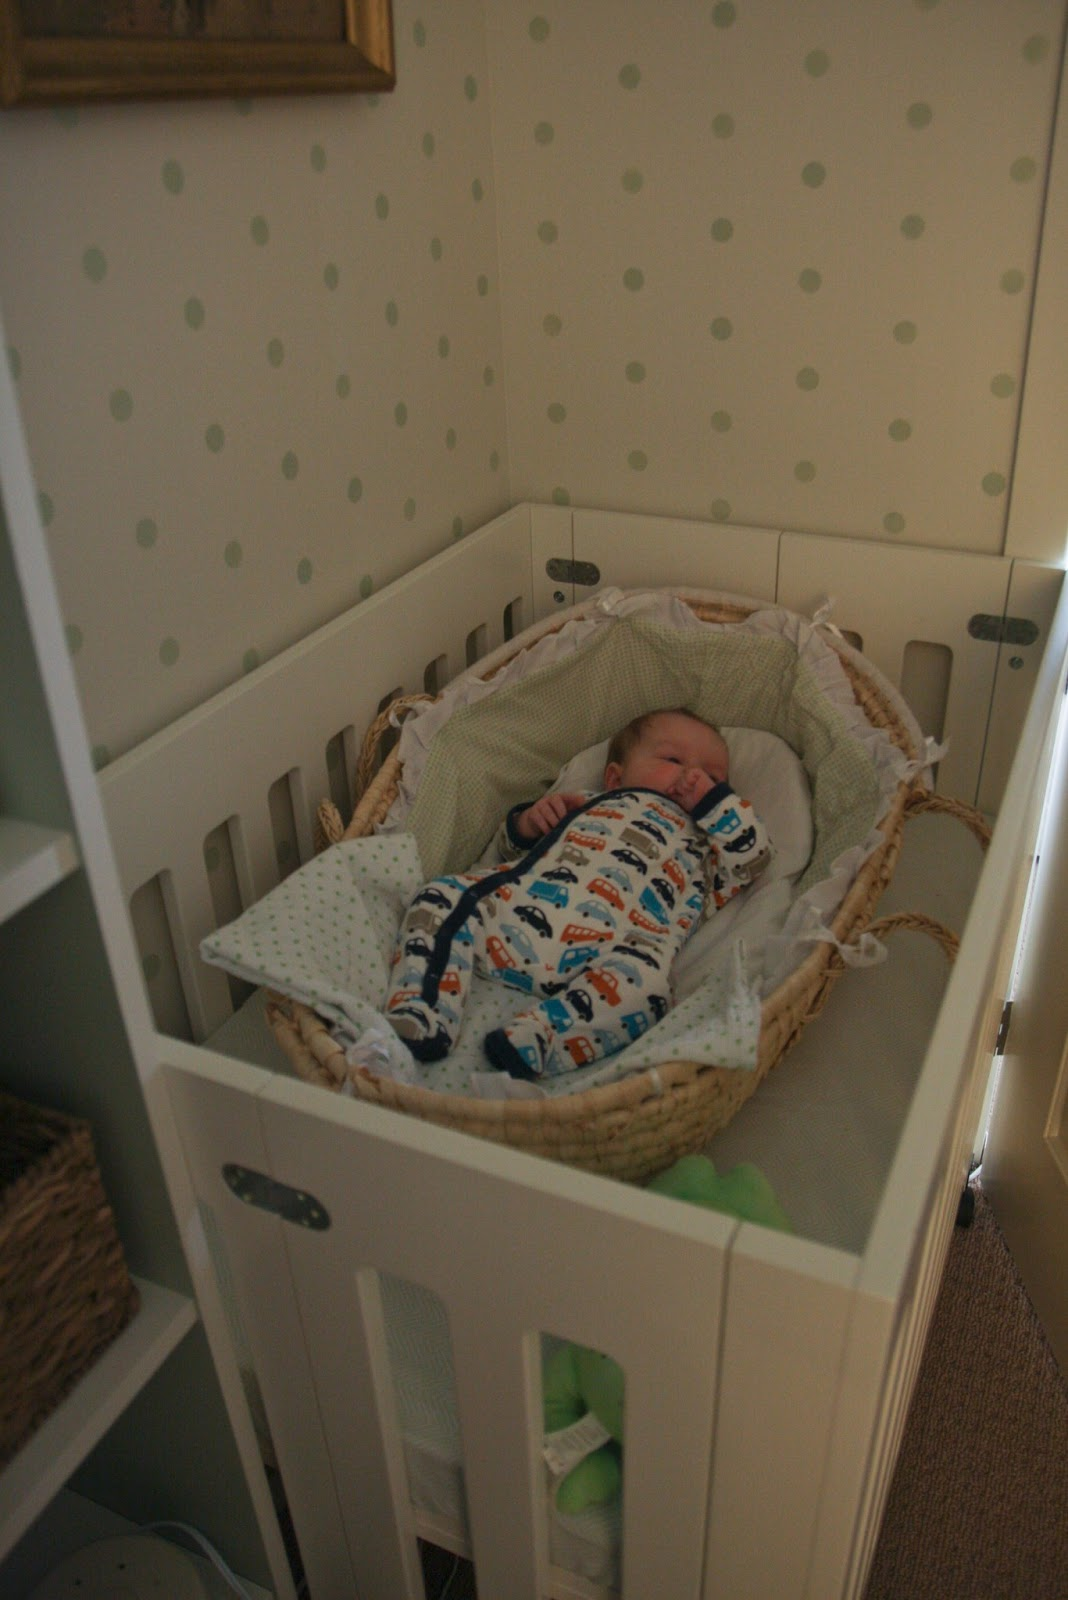 Sabbe interior design the blog the closet nursery Master bedroom with a crib